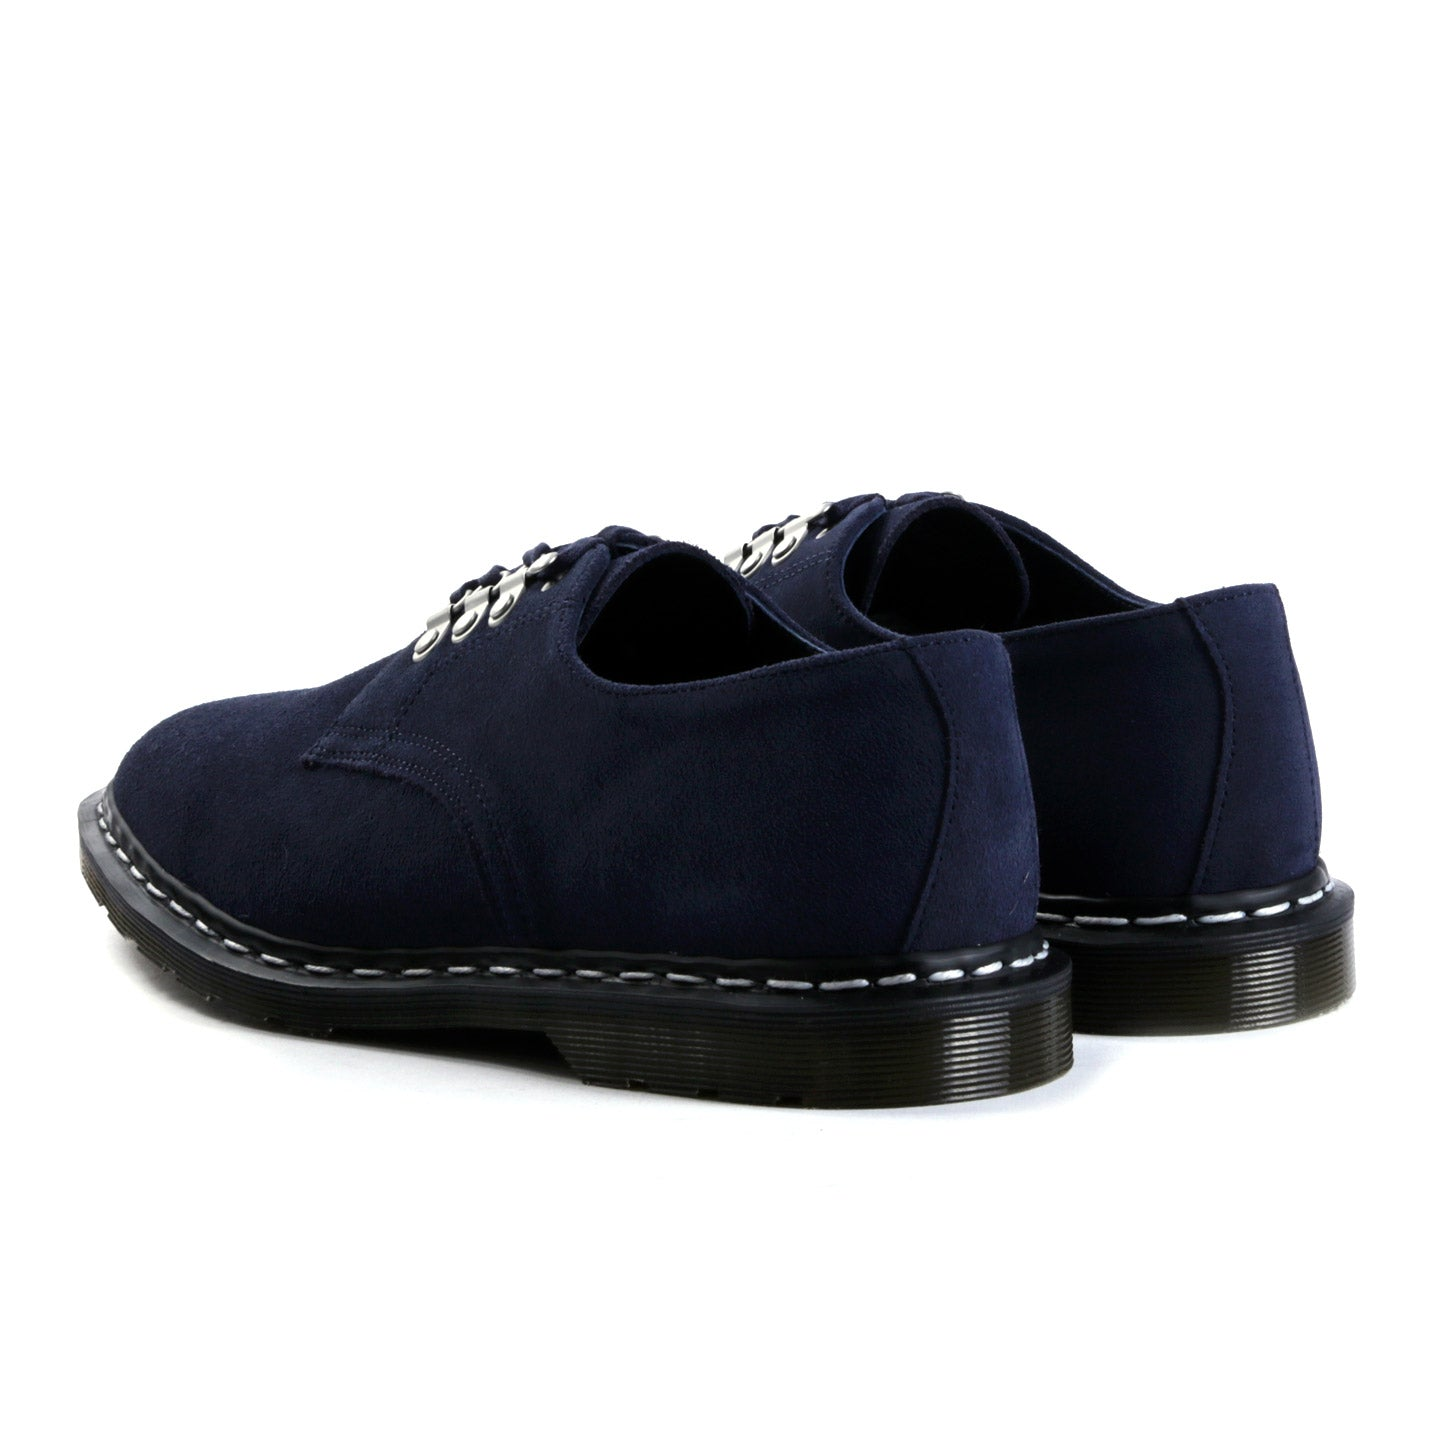 DR. MARTENS NANAMICA MIE PLYMOUTH OFFICER SHOE NAVY HI SUEDE WP